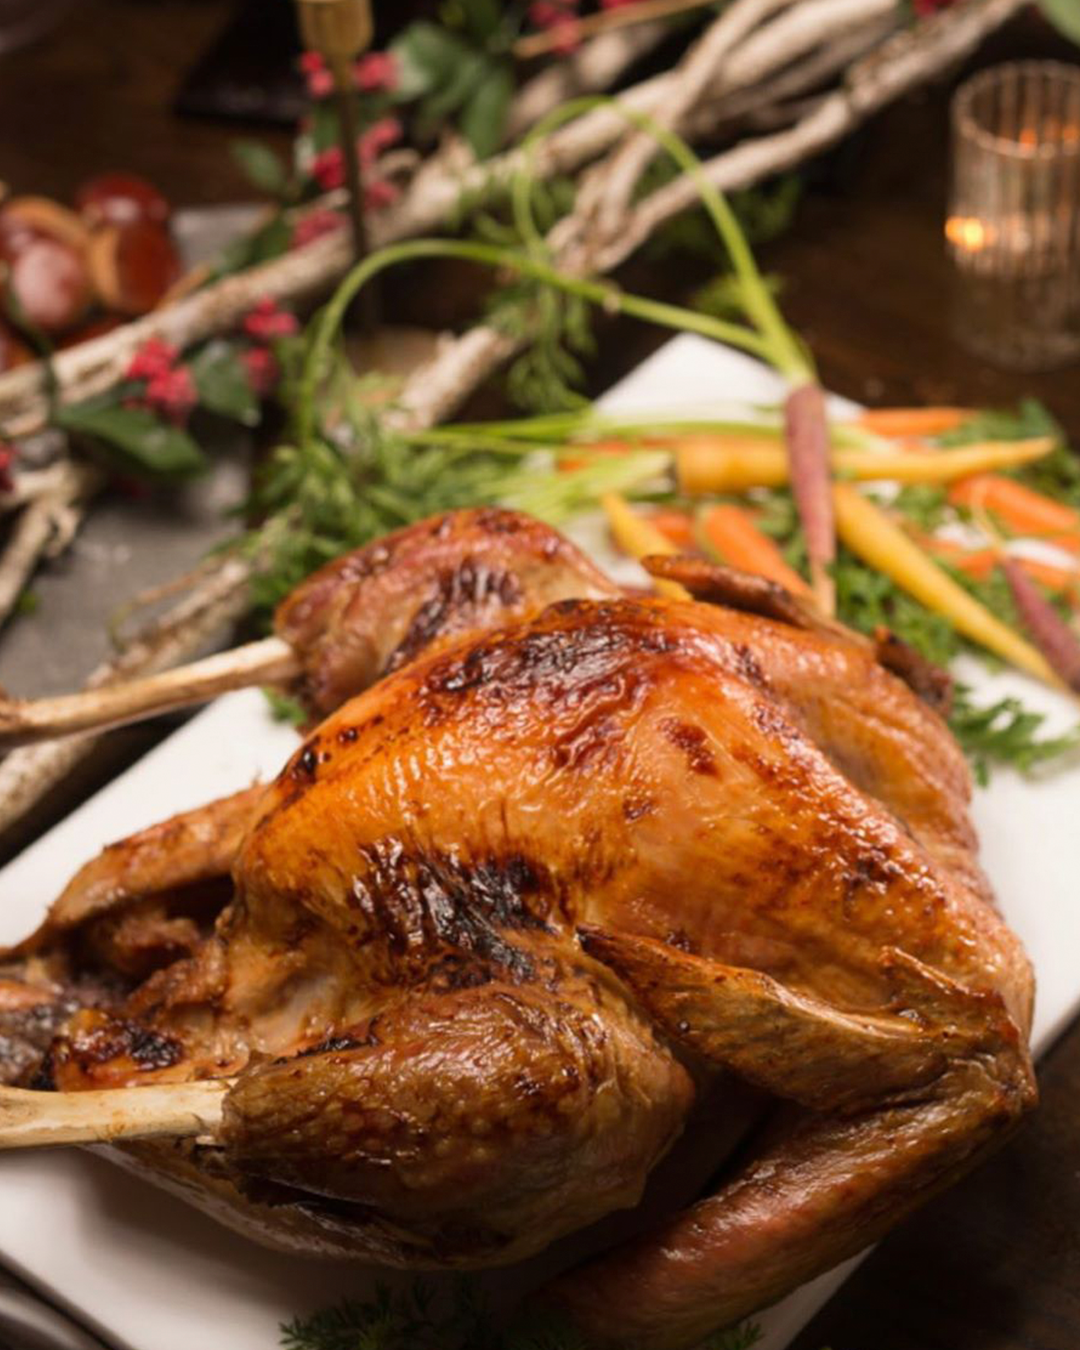 Crispy roast chicken on a white platter with carrots and vegetables in the background.